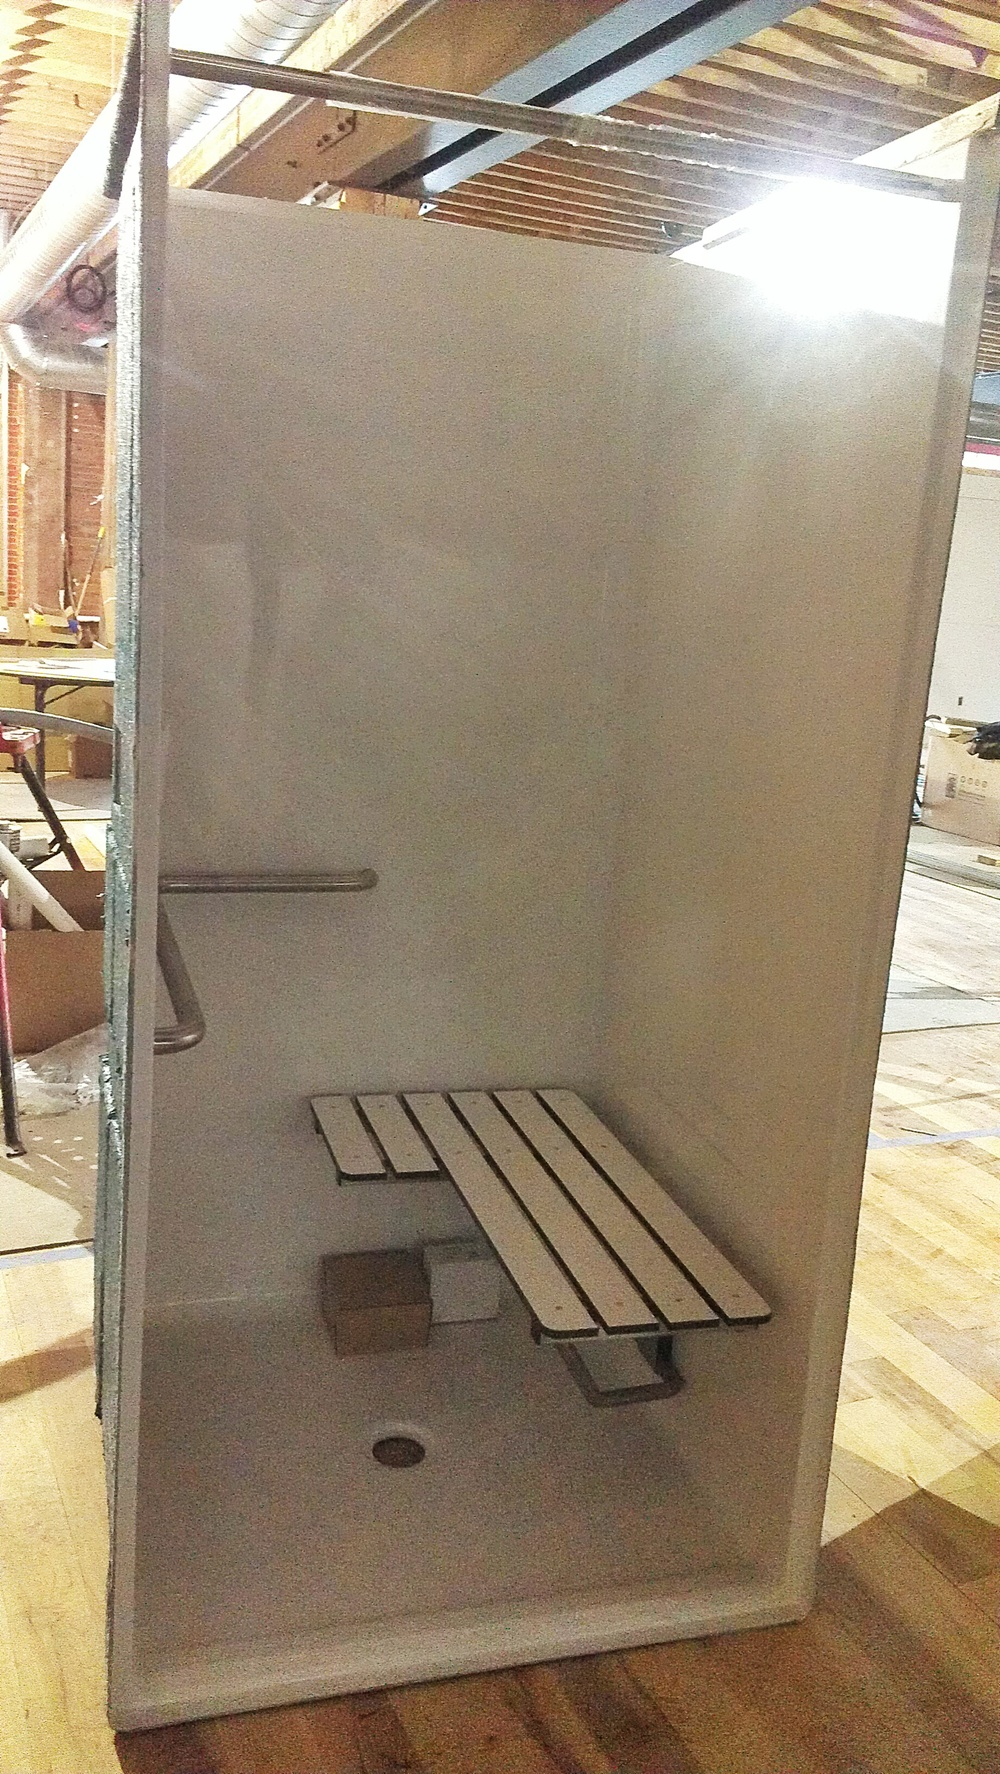 This is our ADA approved employee shower, perfect for use between a sweaty bike ride and handling food!